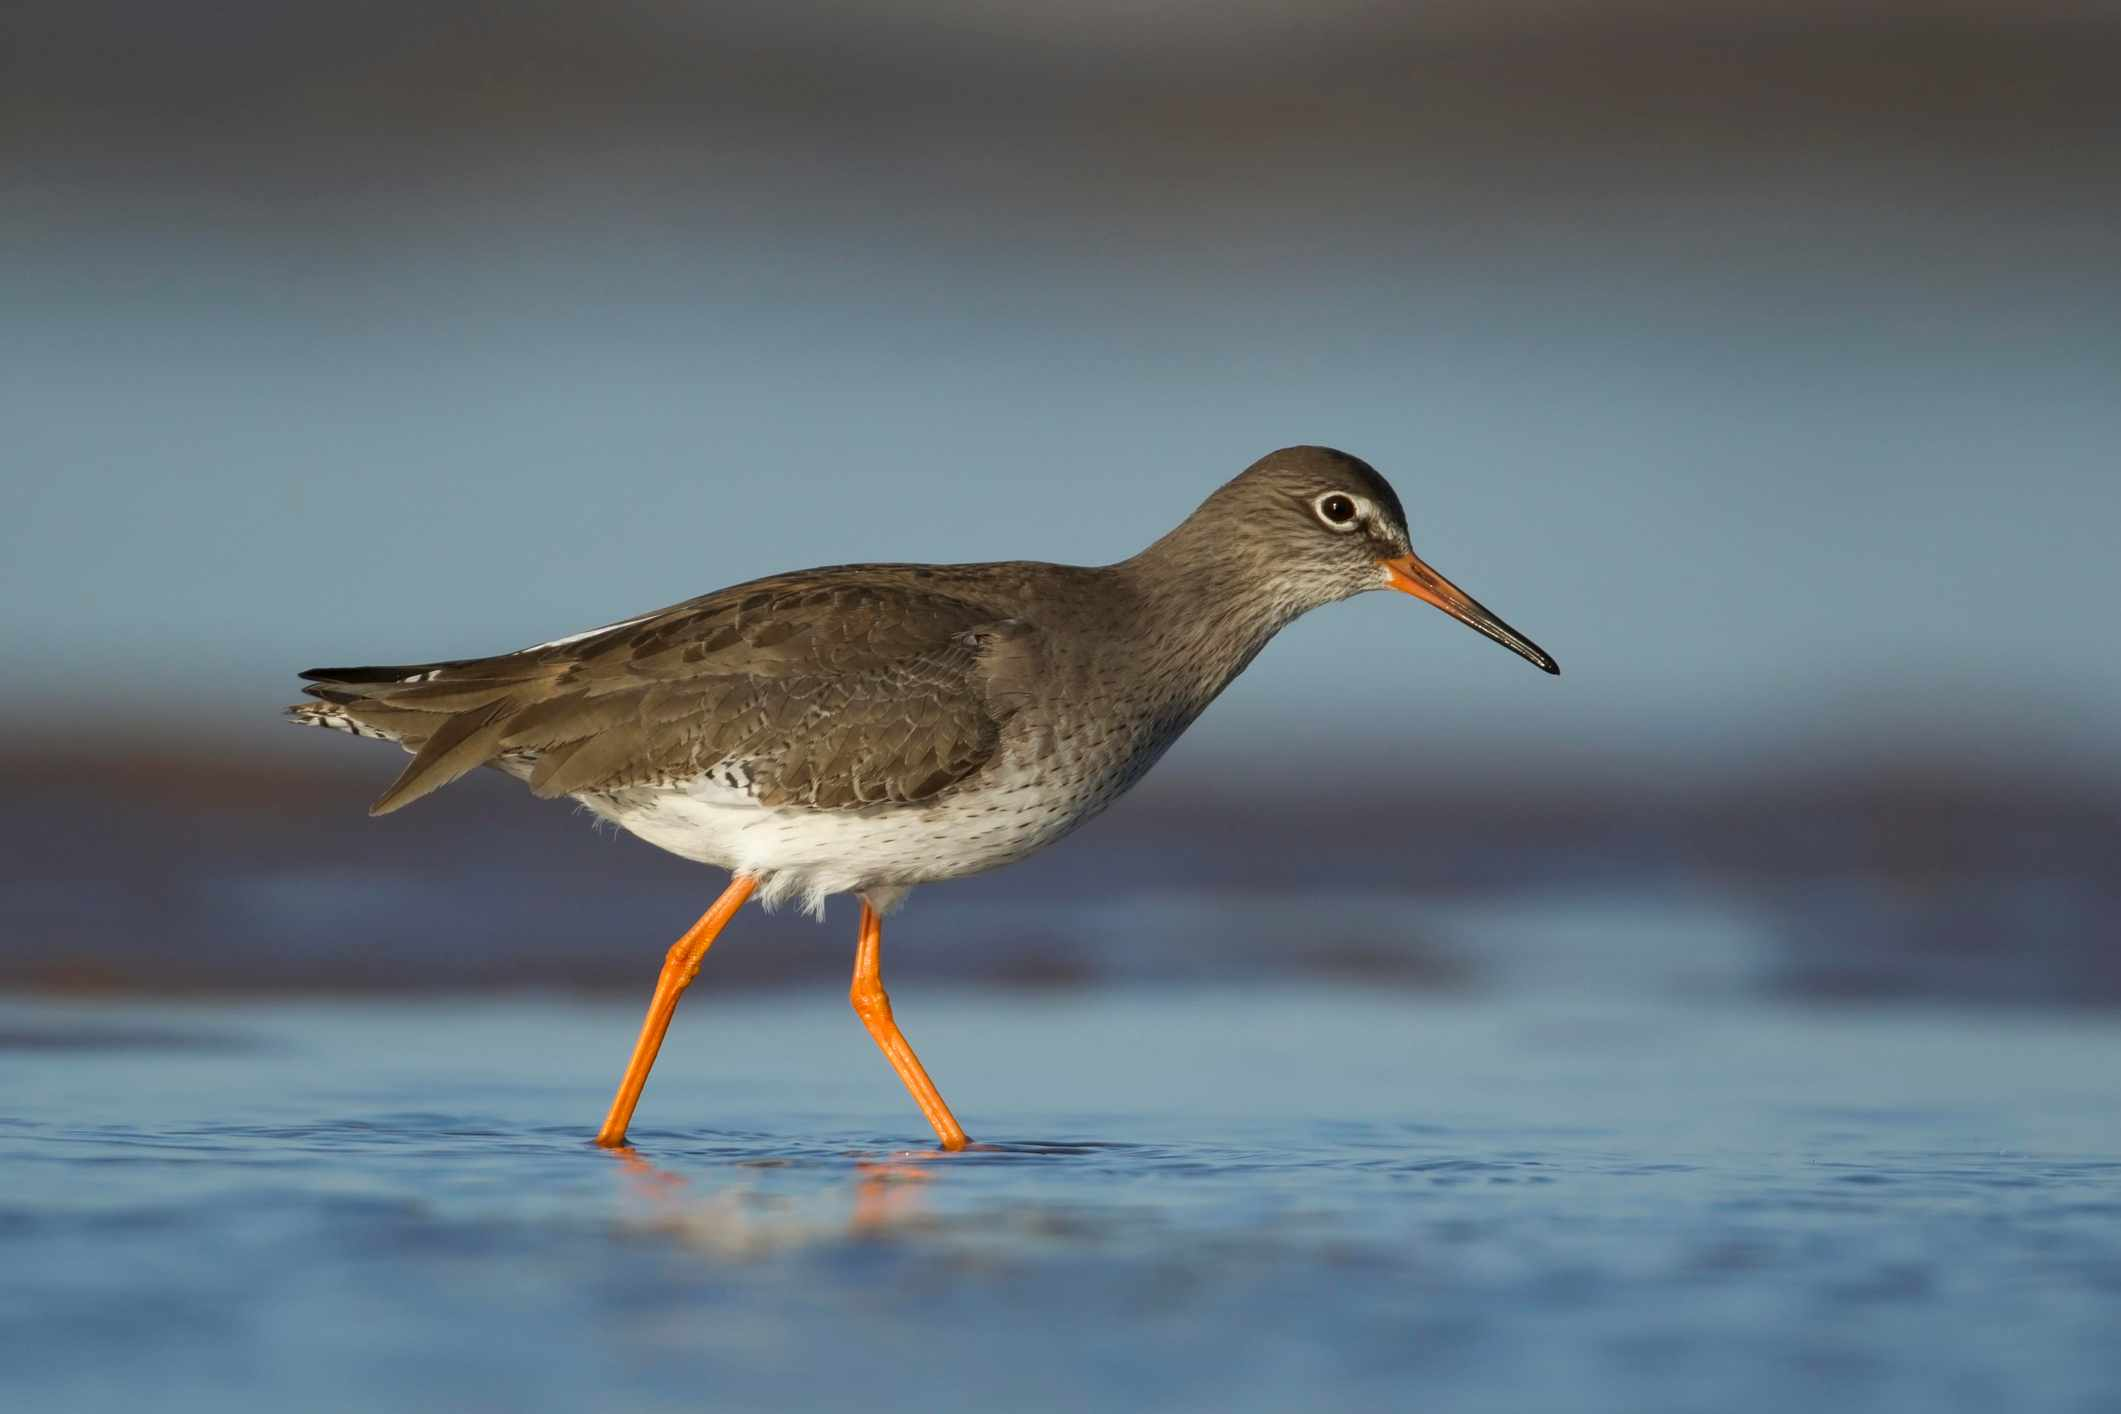 Redshank (Tringa totanus) ©Getty